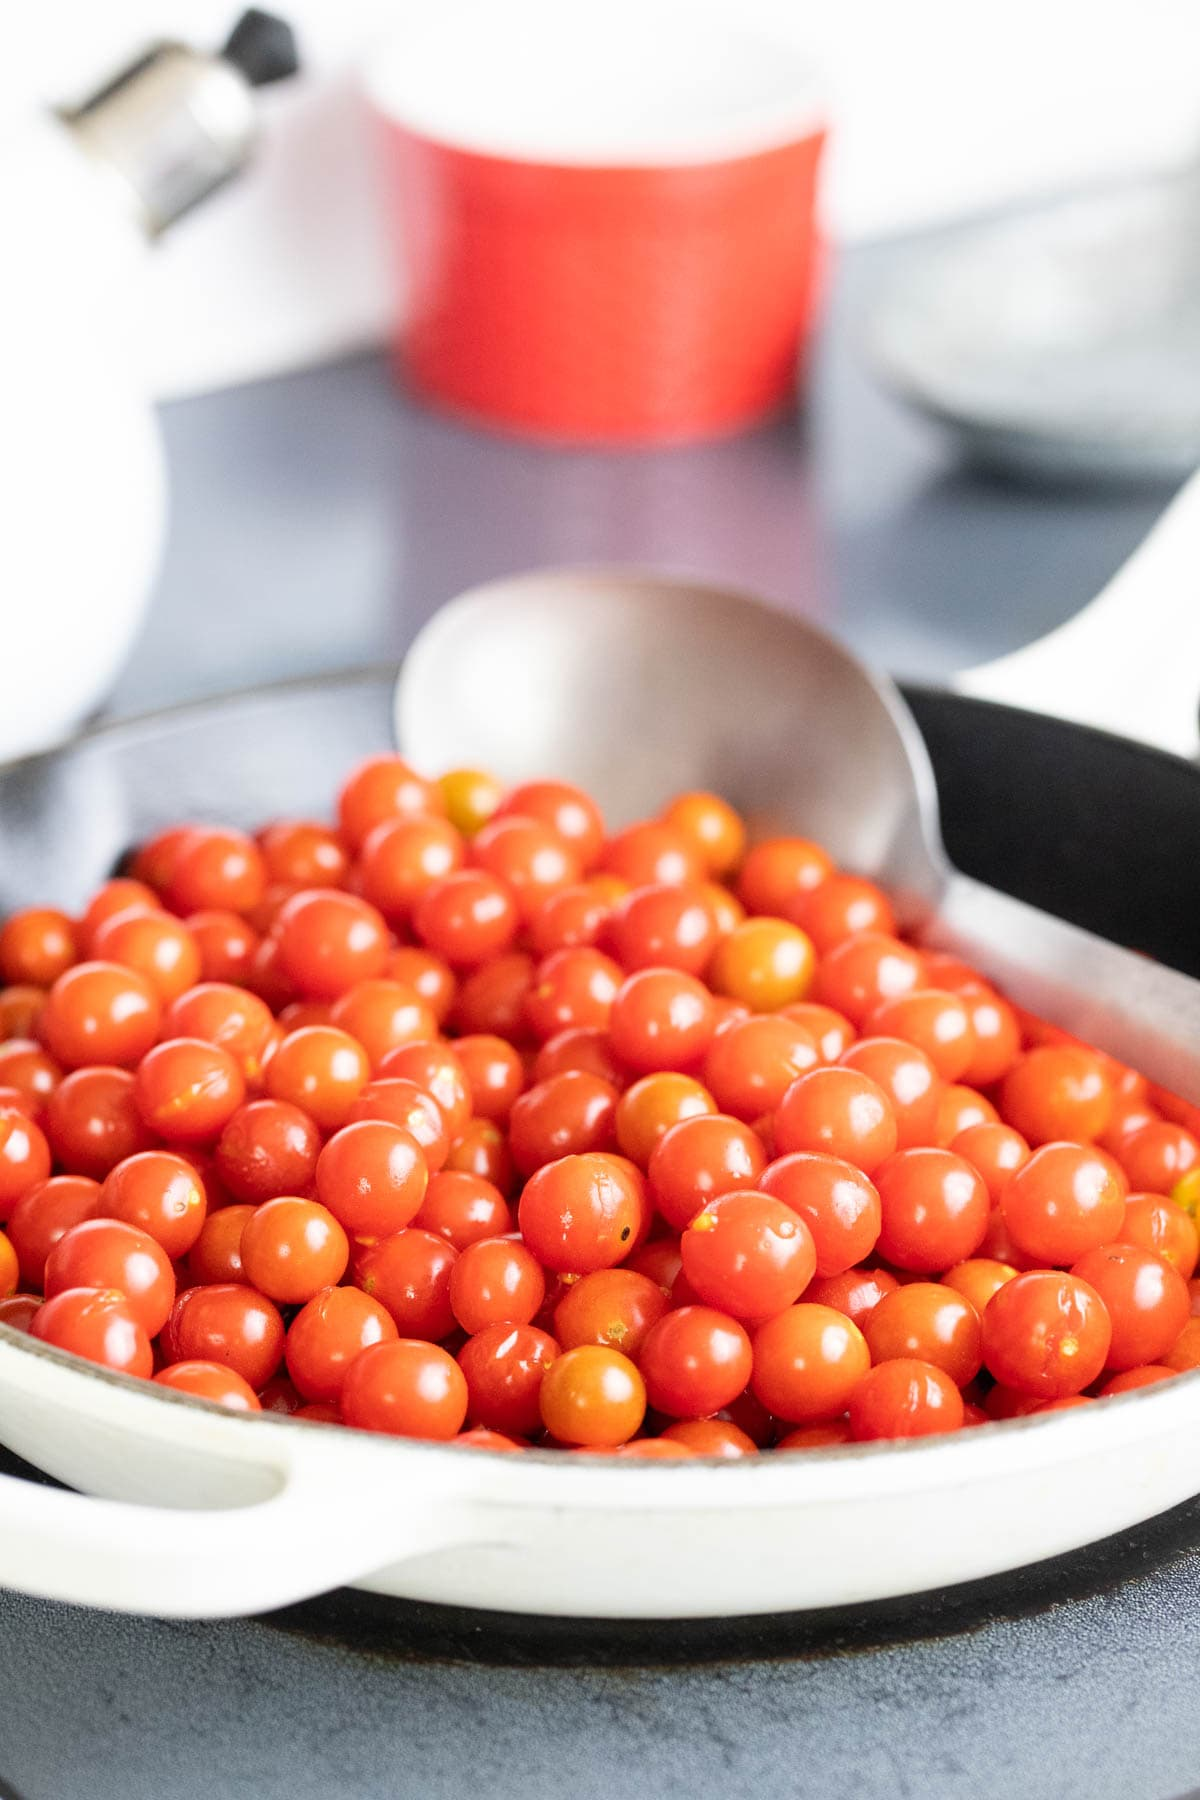 Adding cherry tomatoes to a a pan to cook before hot packing them in jars.